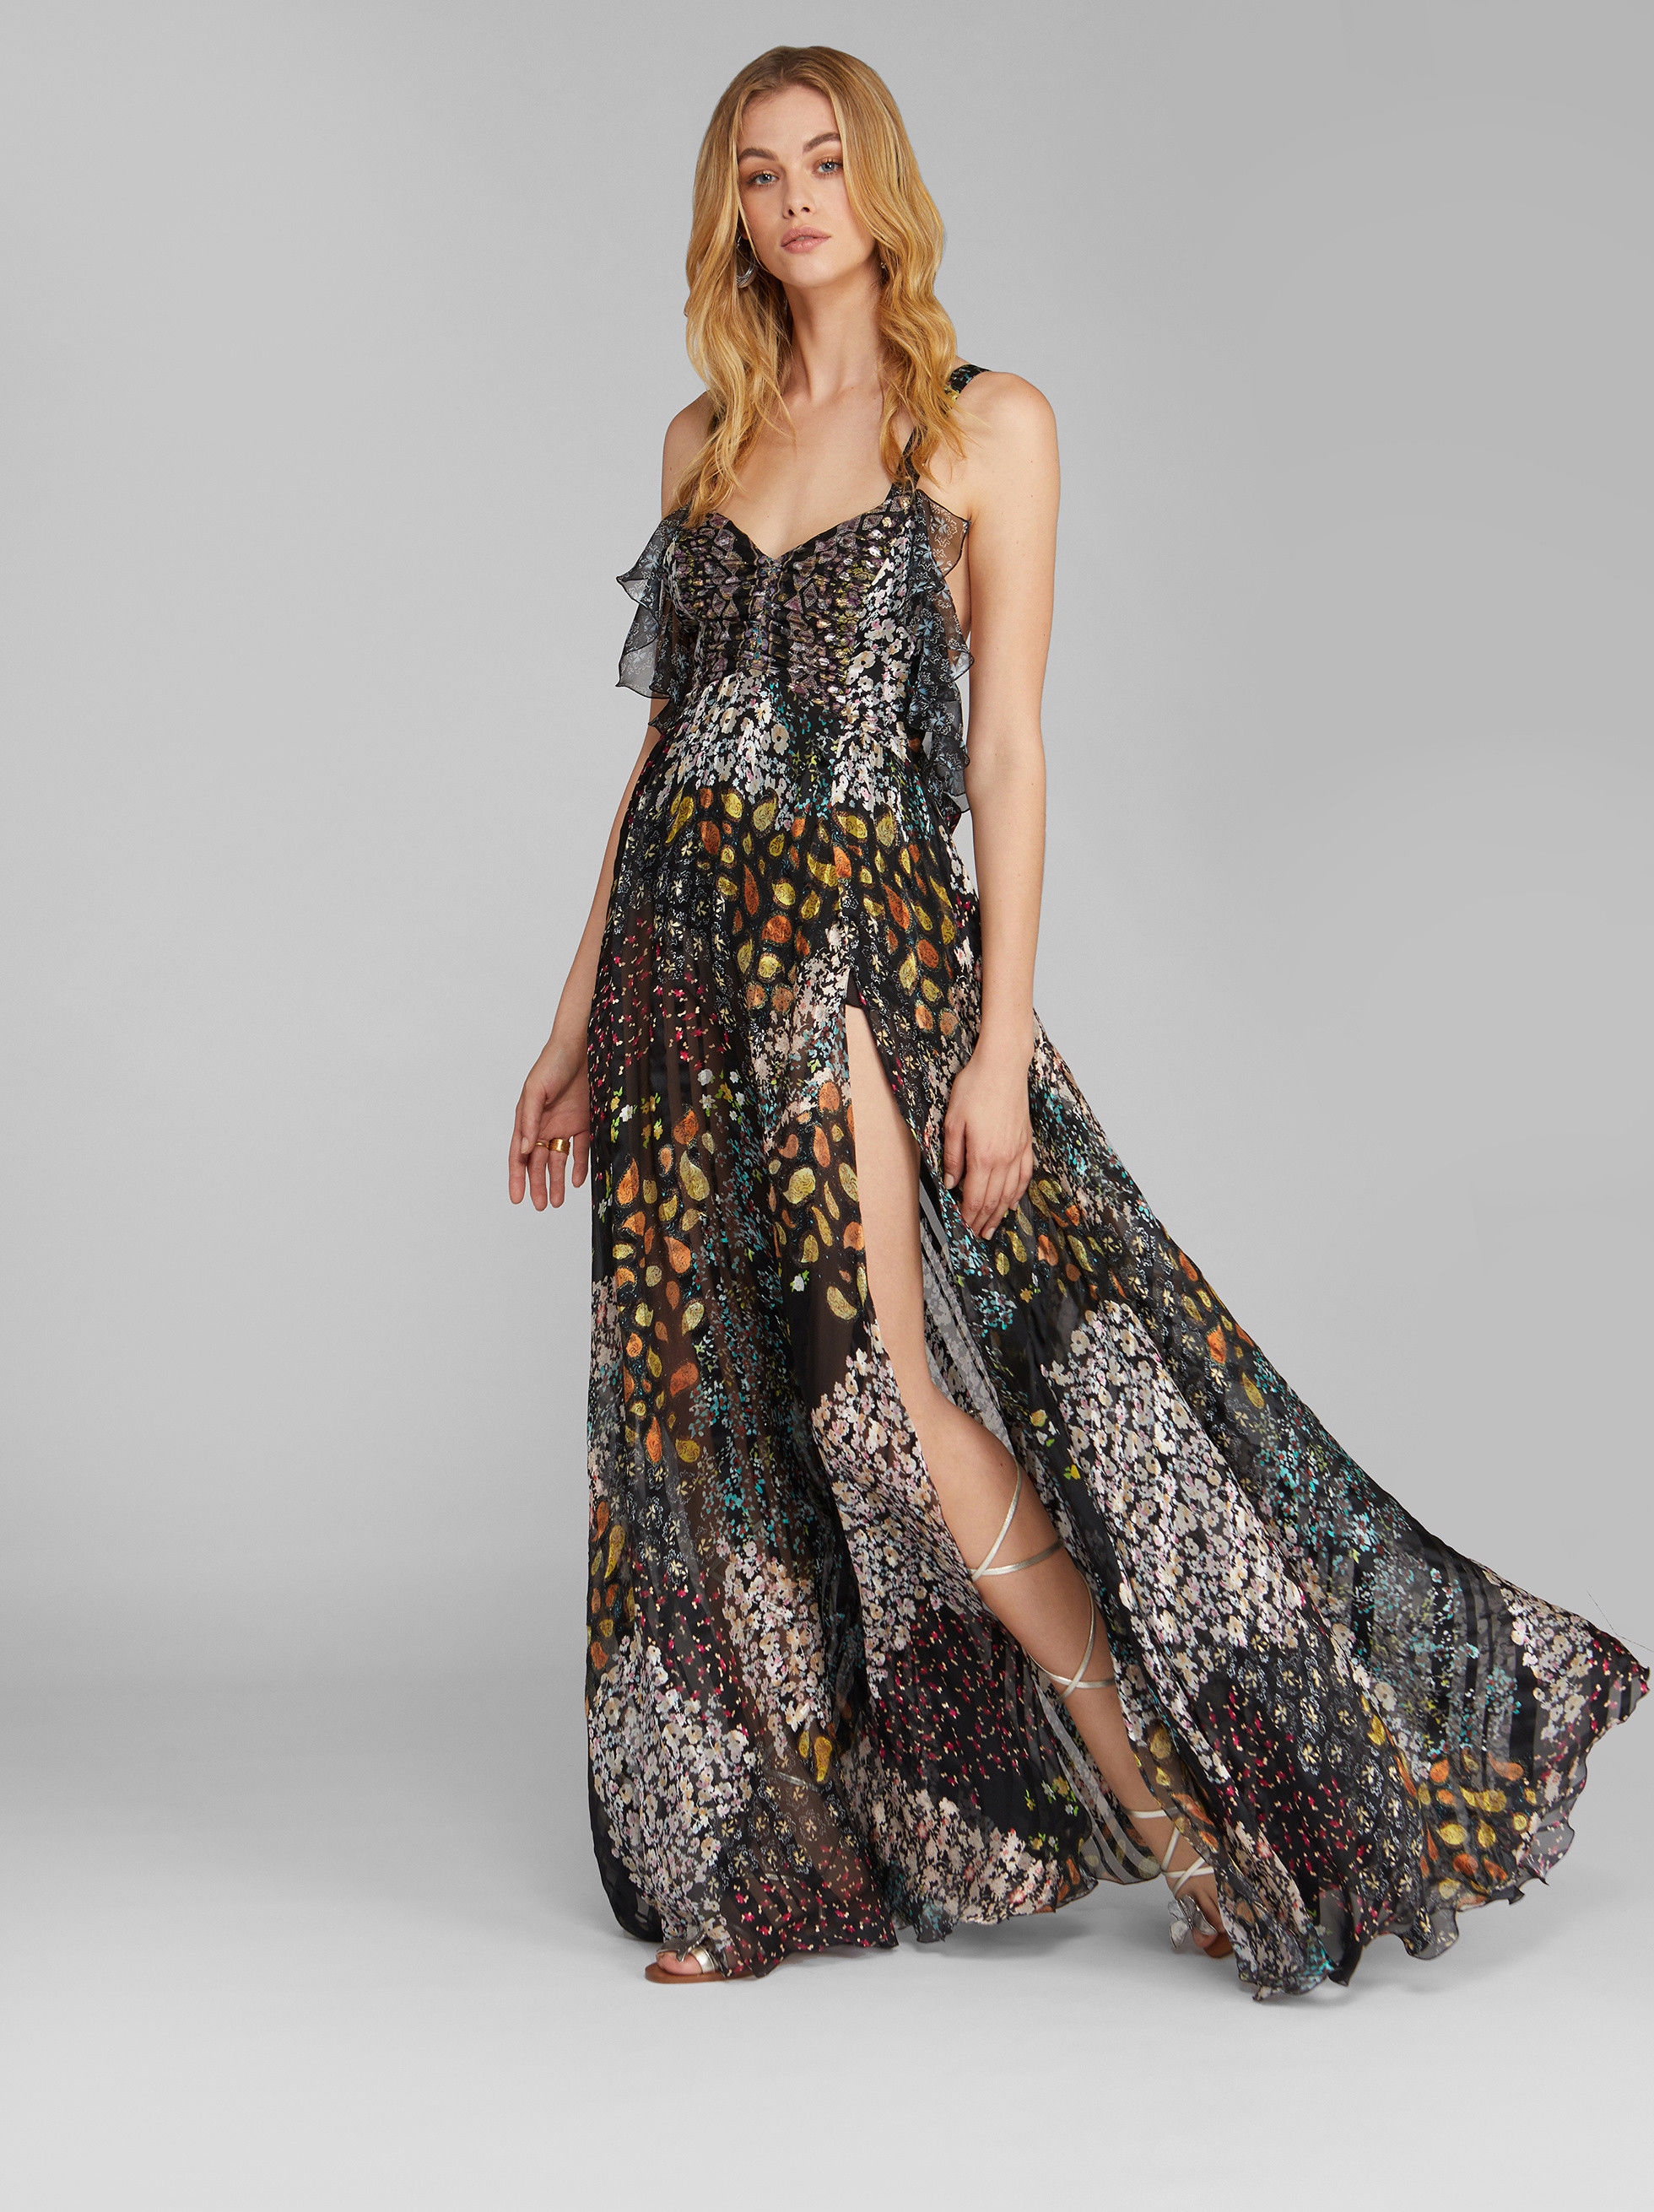 FLORAL PAISLEY PRINT EVENING DRESS